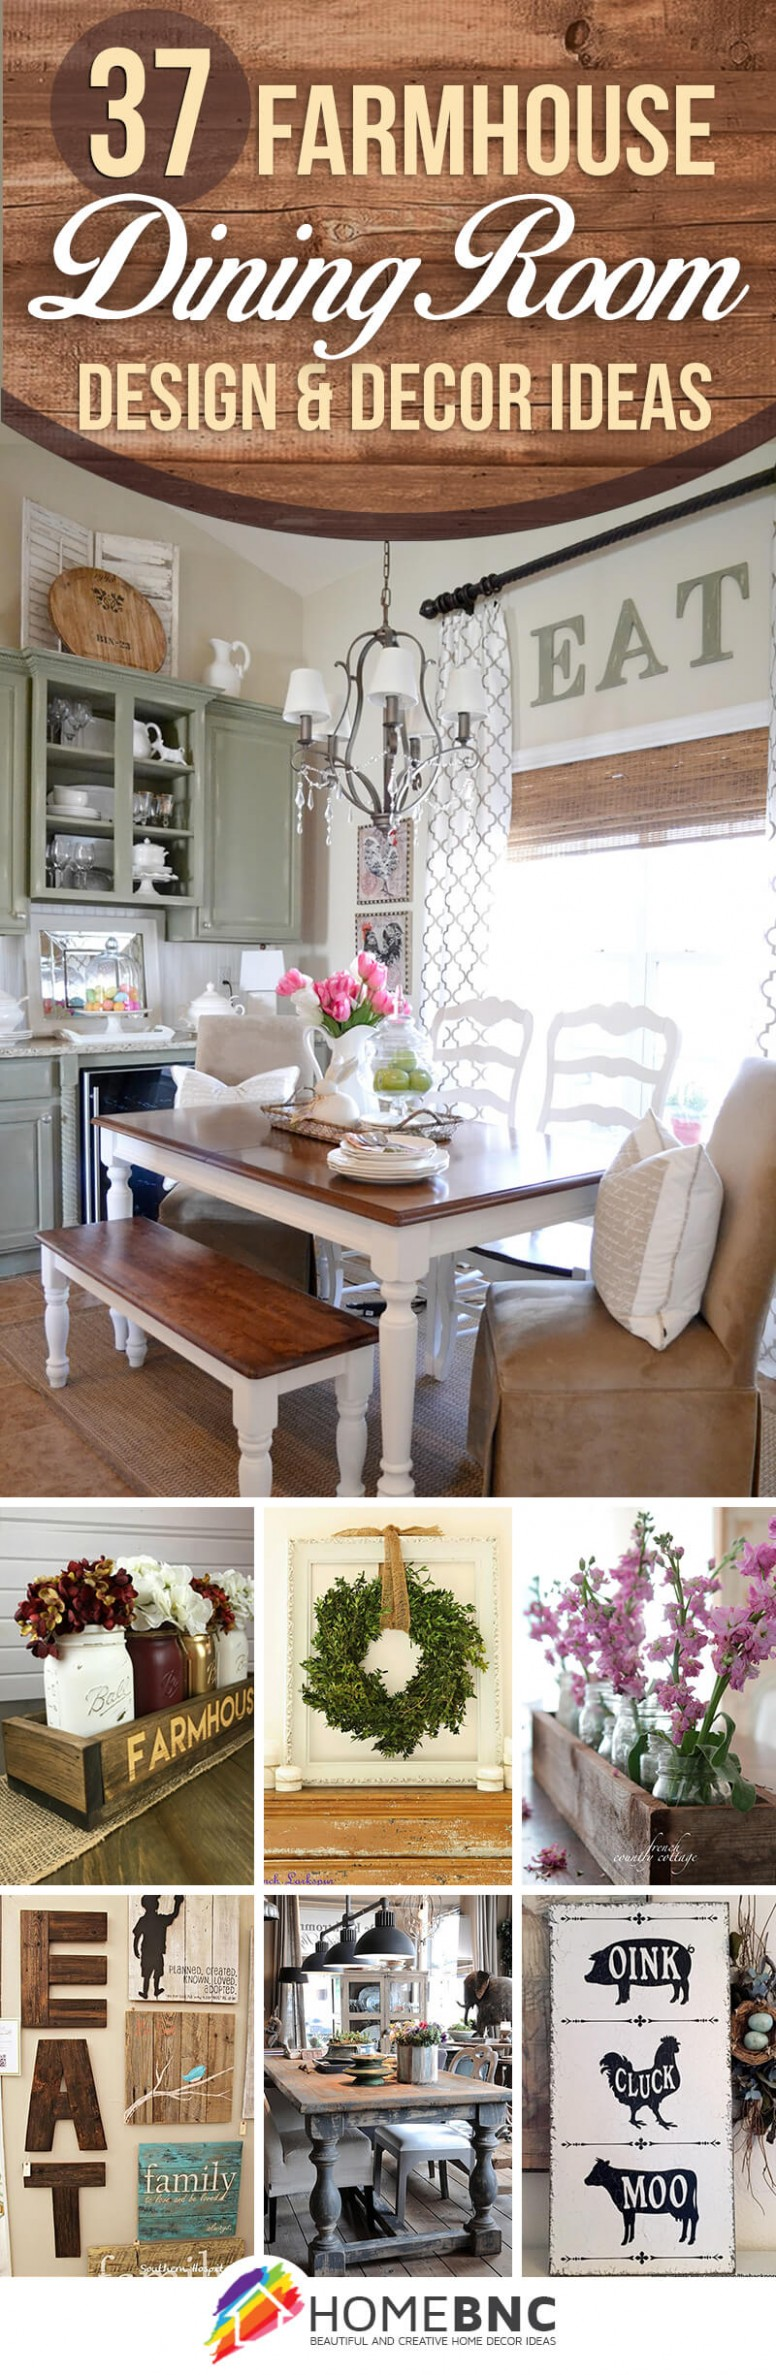 11 Best Farmhouse Dining Room Design and Decor Ideas for 11 - Dining Room Ideas Country Style